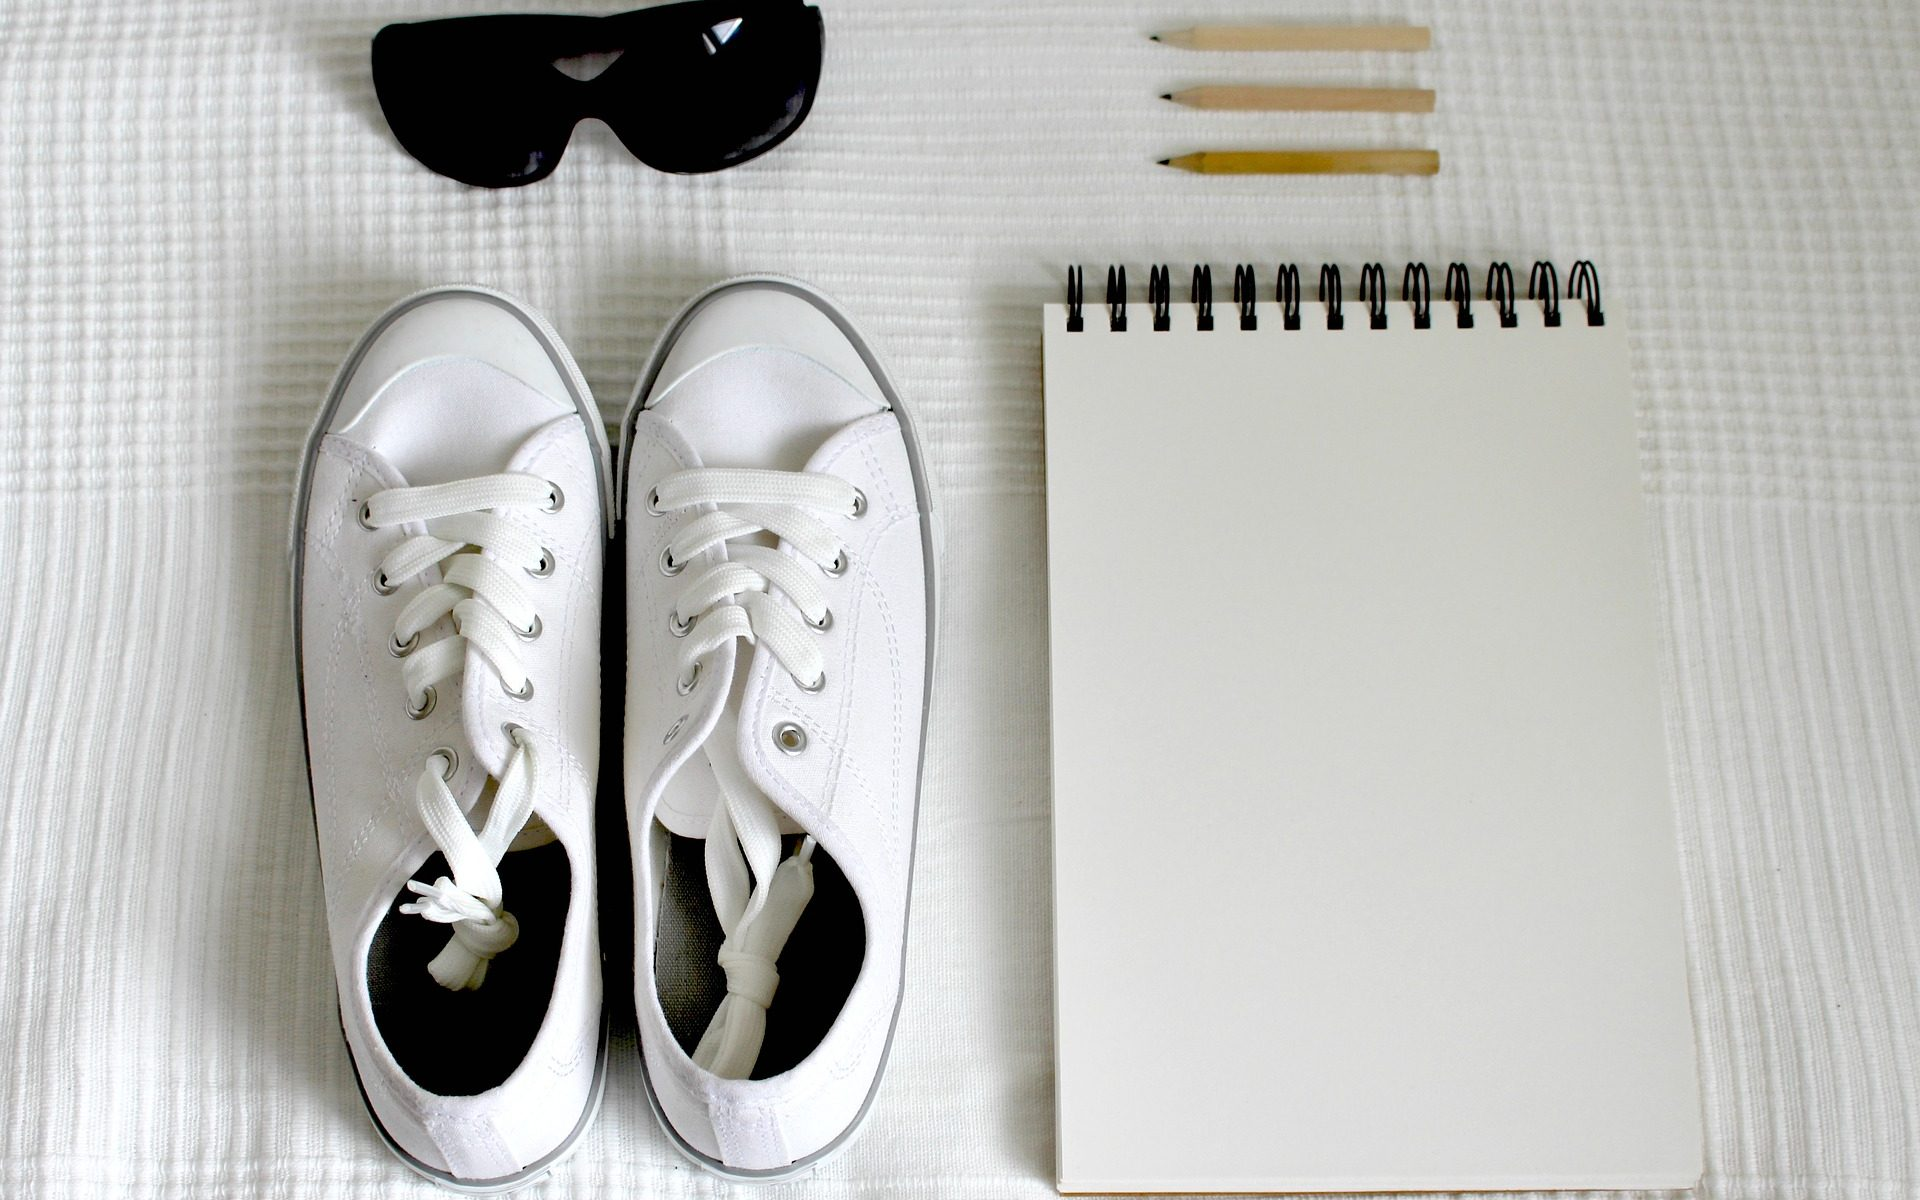 Success with less stress - shoes photo